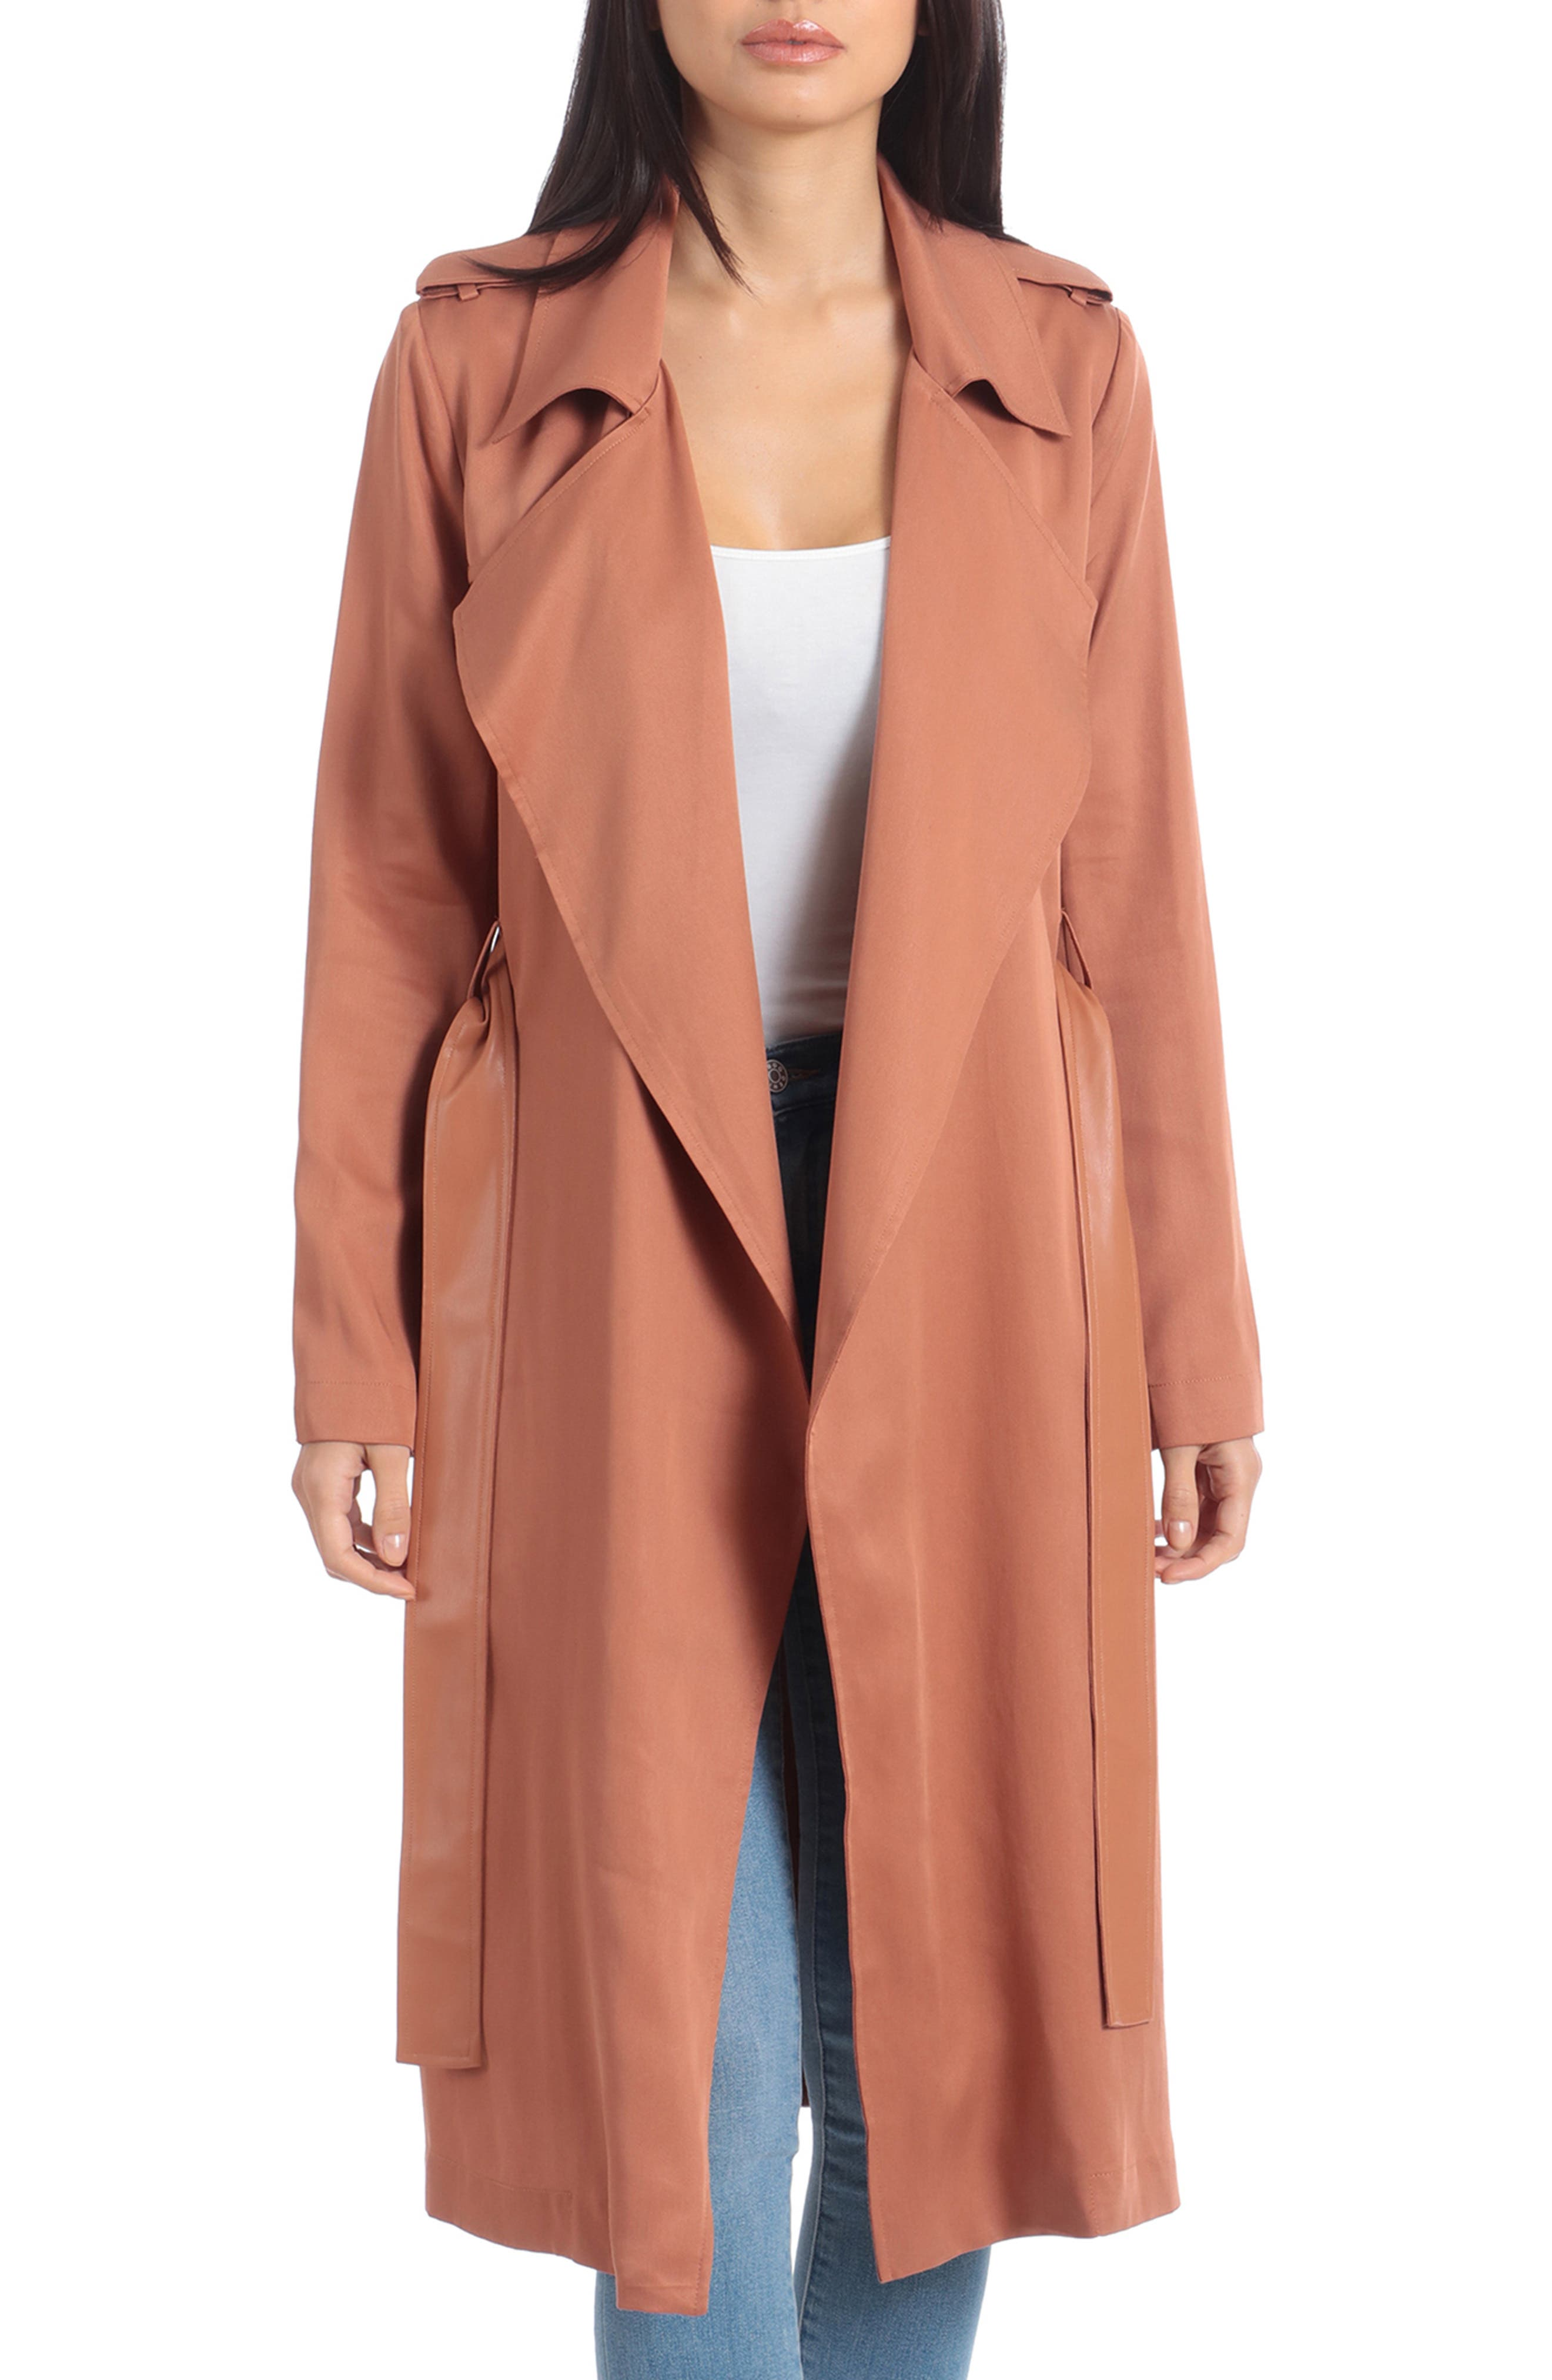 BADGLEY MISCHKA COLLECTION, Badgley Mischka Faux Leather Trim Long Trench Coat, Main thumbnail 1, color, CEDAR